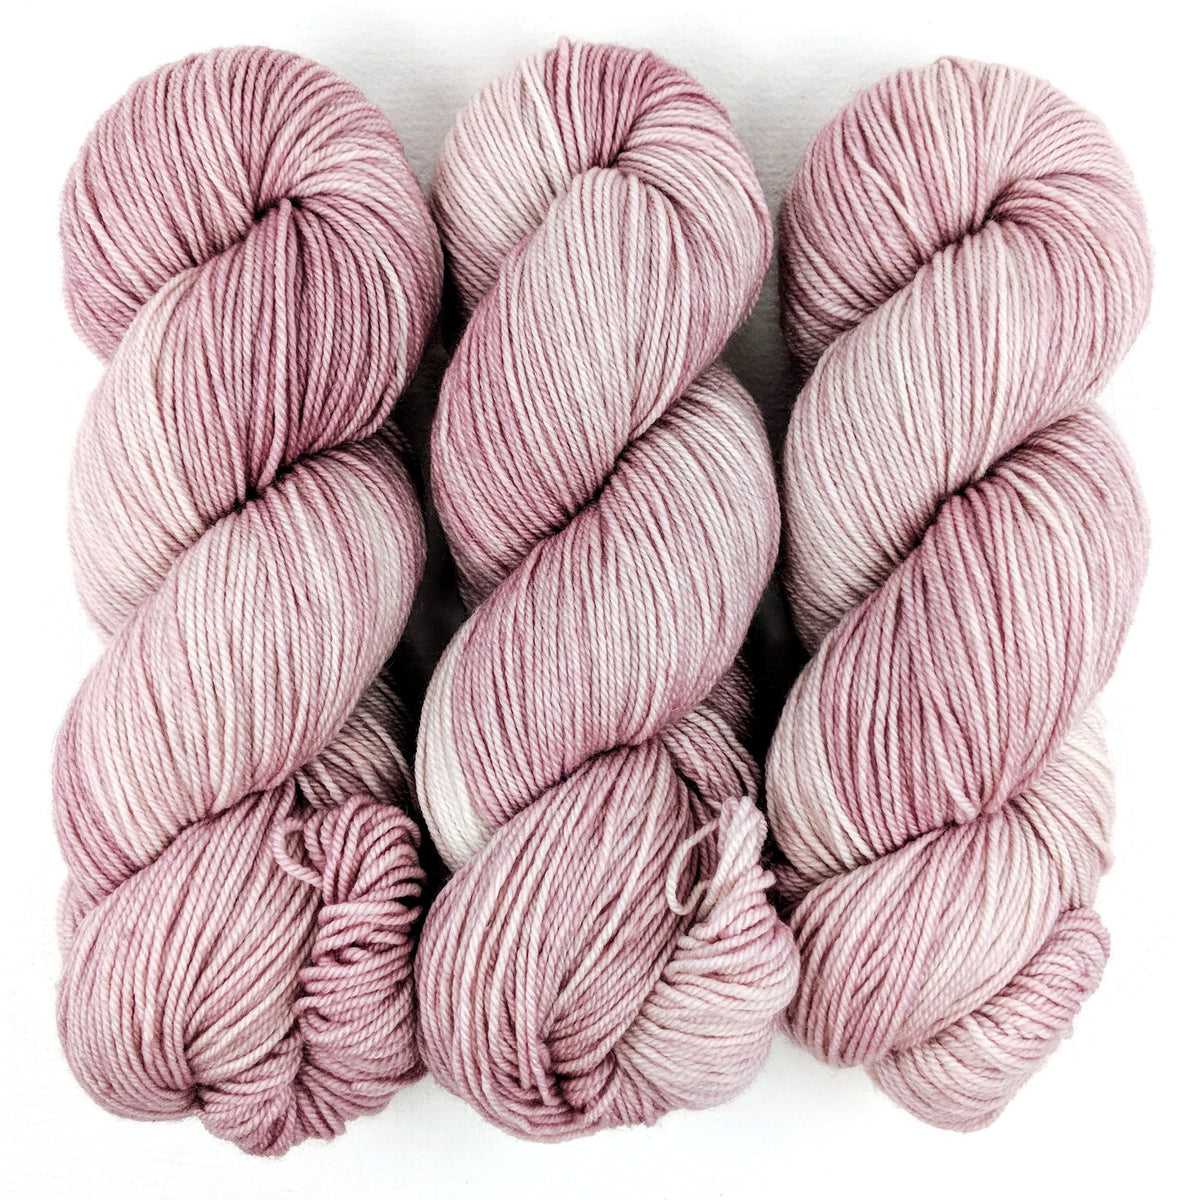 Apple Blossom - Big Squeeze Bulky - Dyed Stock